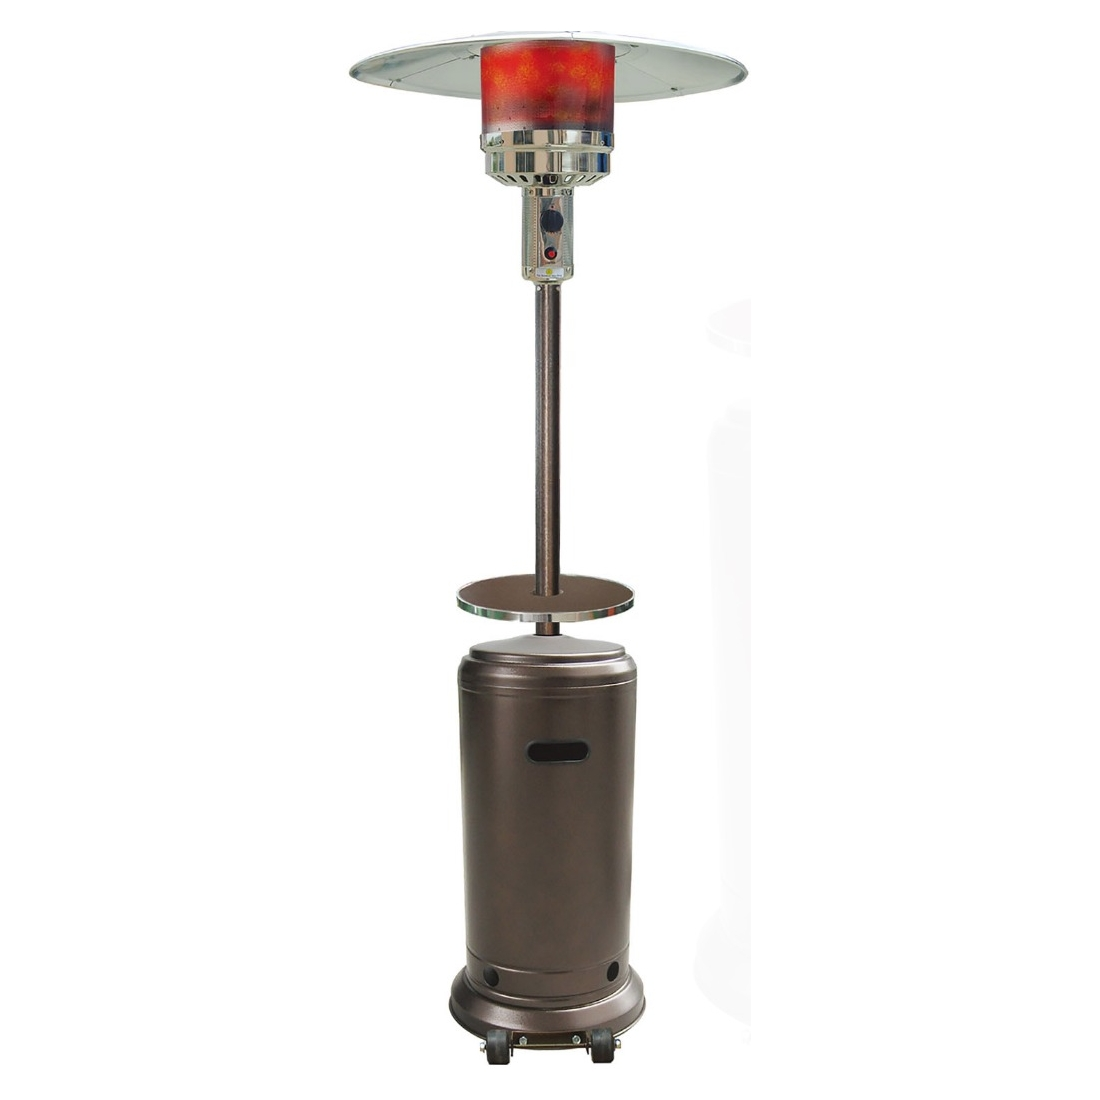 Good Hanover Outdoor 7 Ft. 41,000 BTU Steel Umbrella Propane Patio Heater